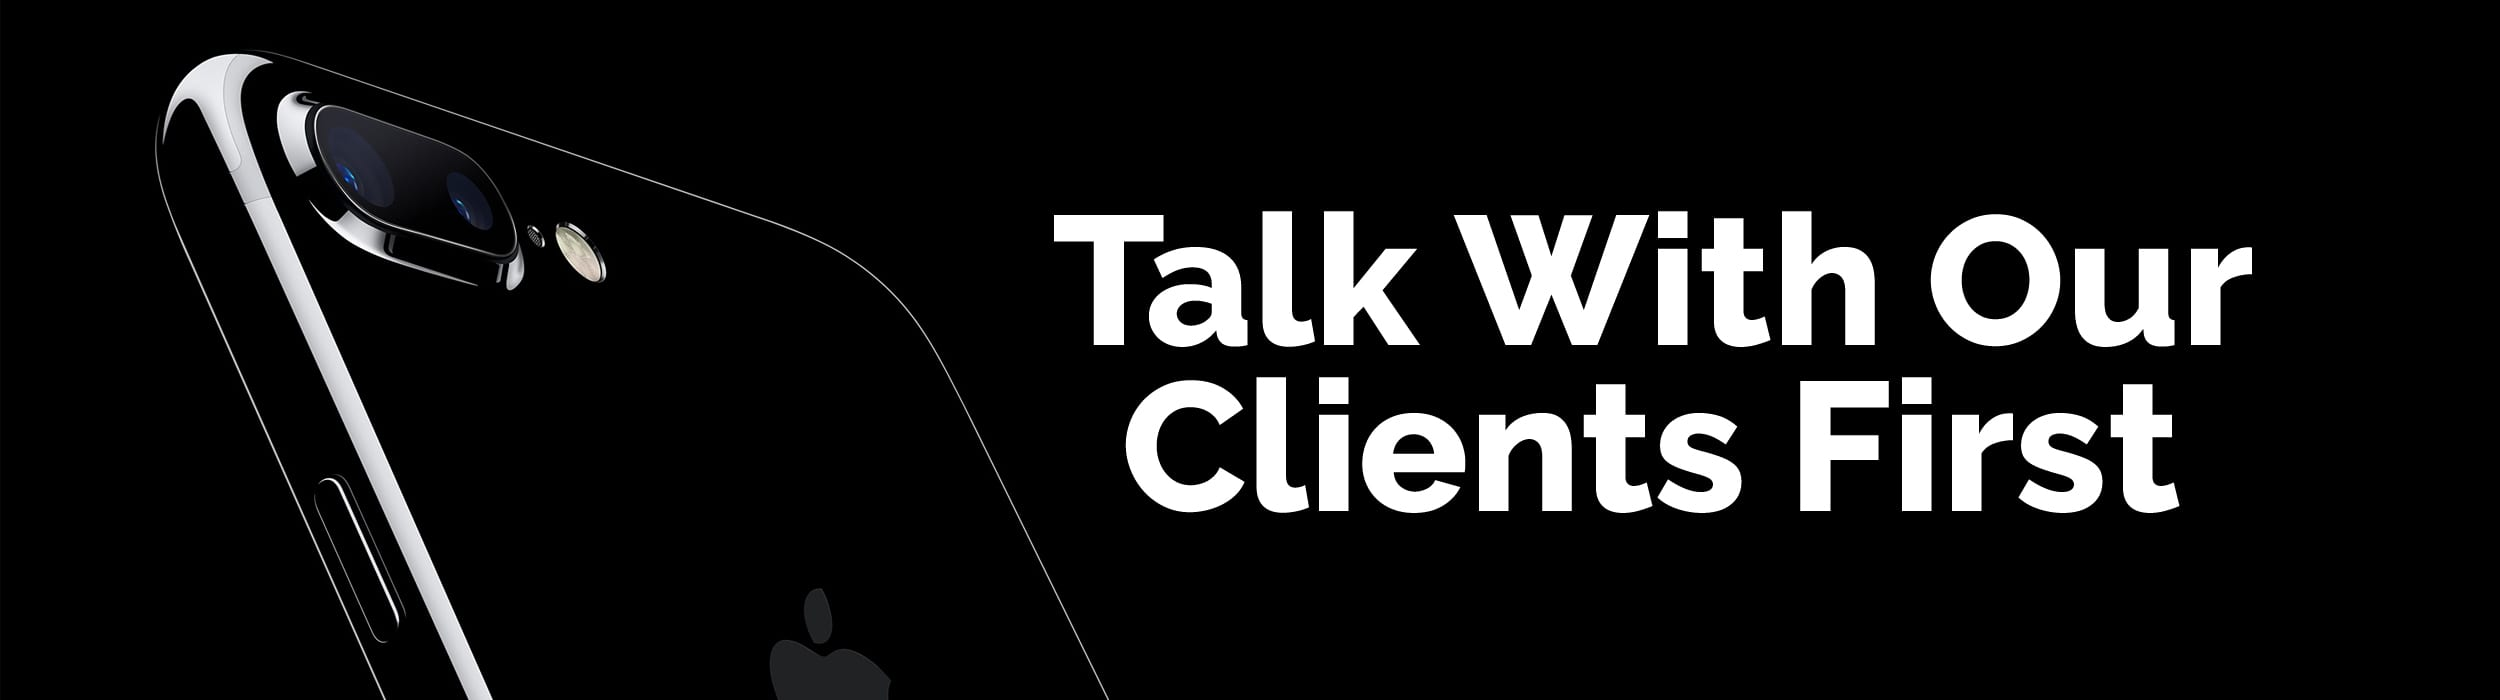 talk-with-our-clients-first